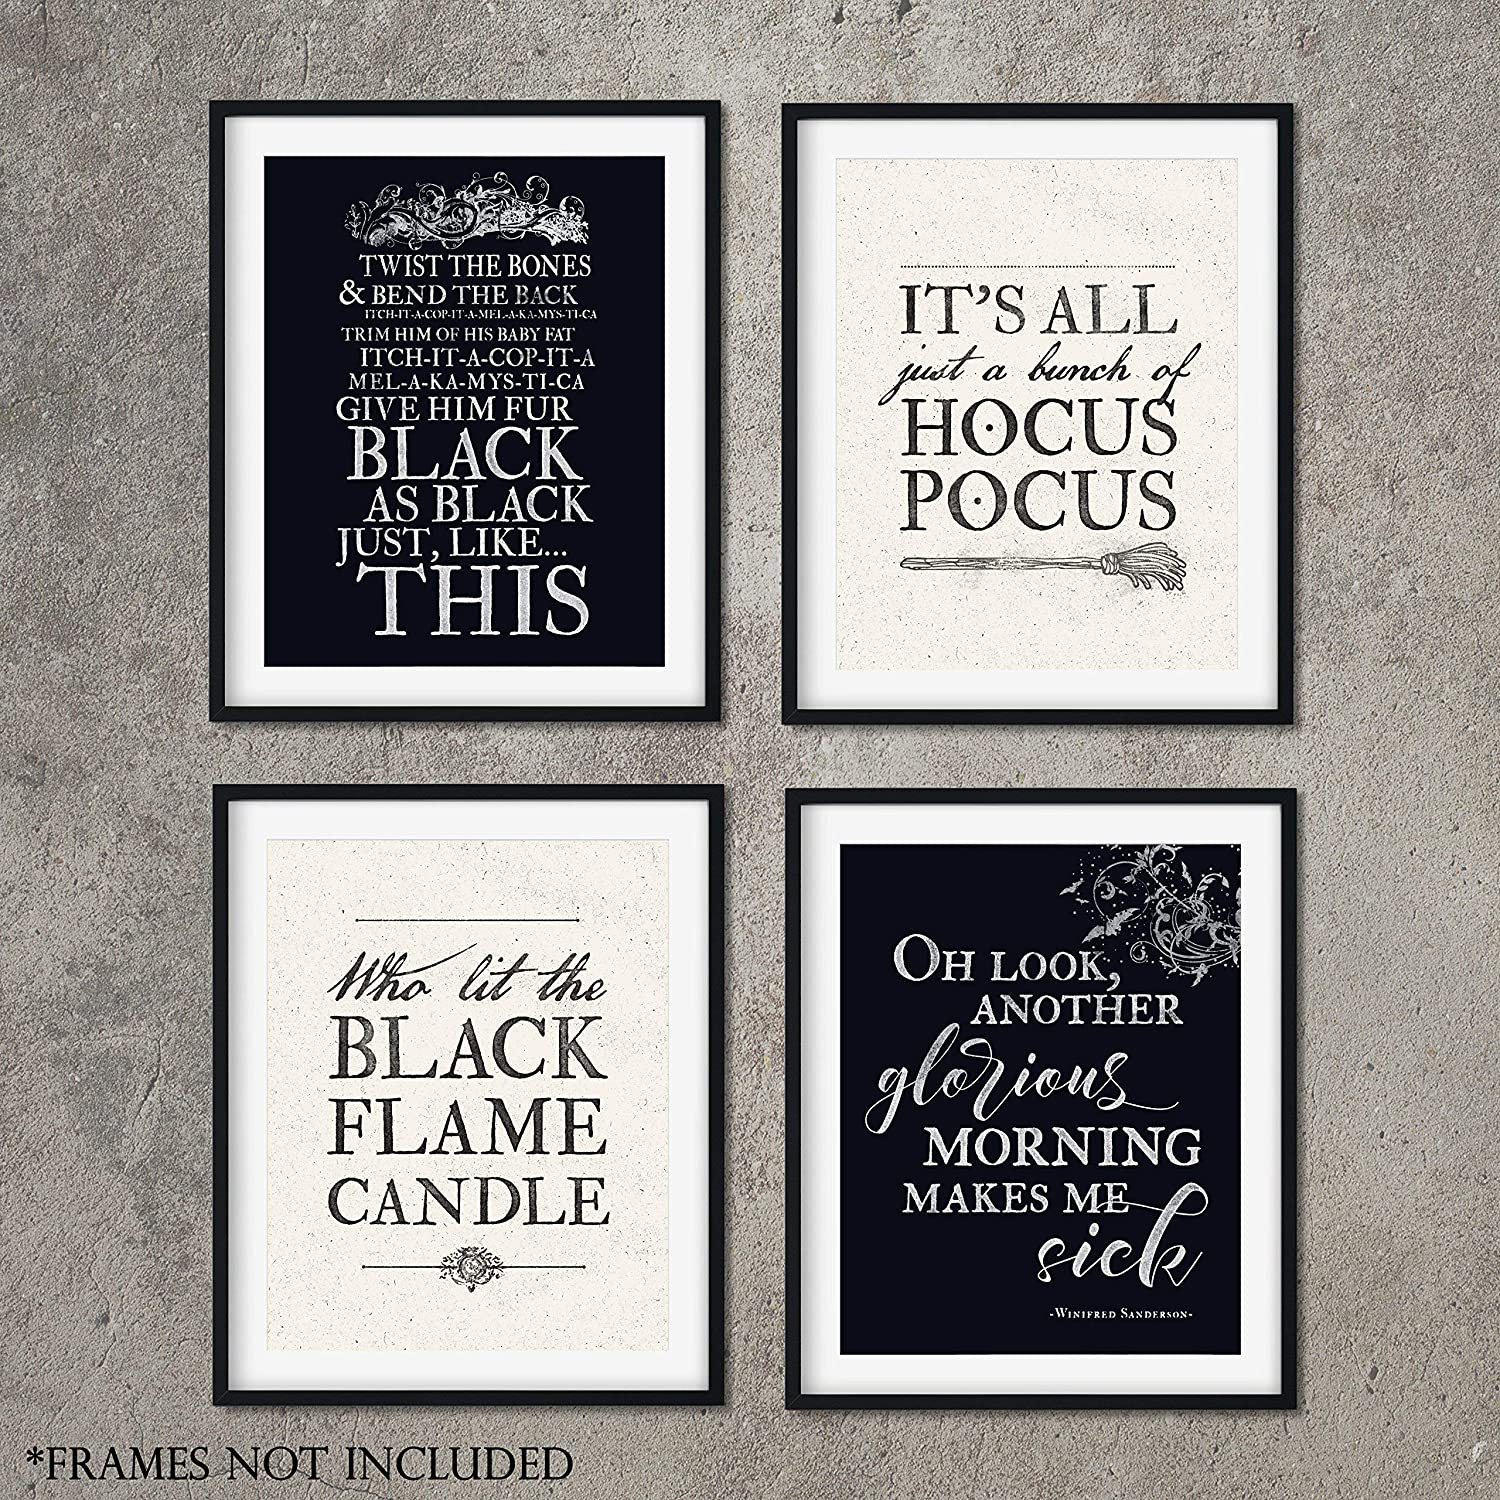 Hocus Pocus Halloween Art Prints - Set of FOUR (8x10) Prints Unframed - Perfect Halloween Decorations